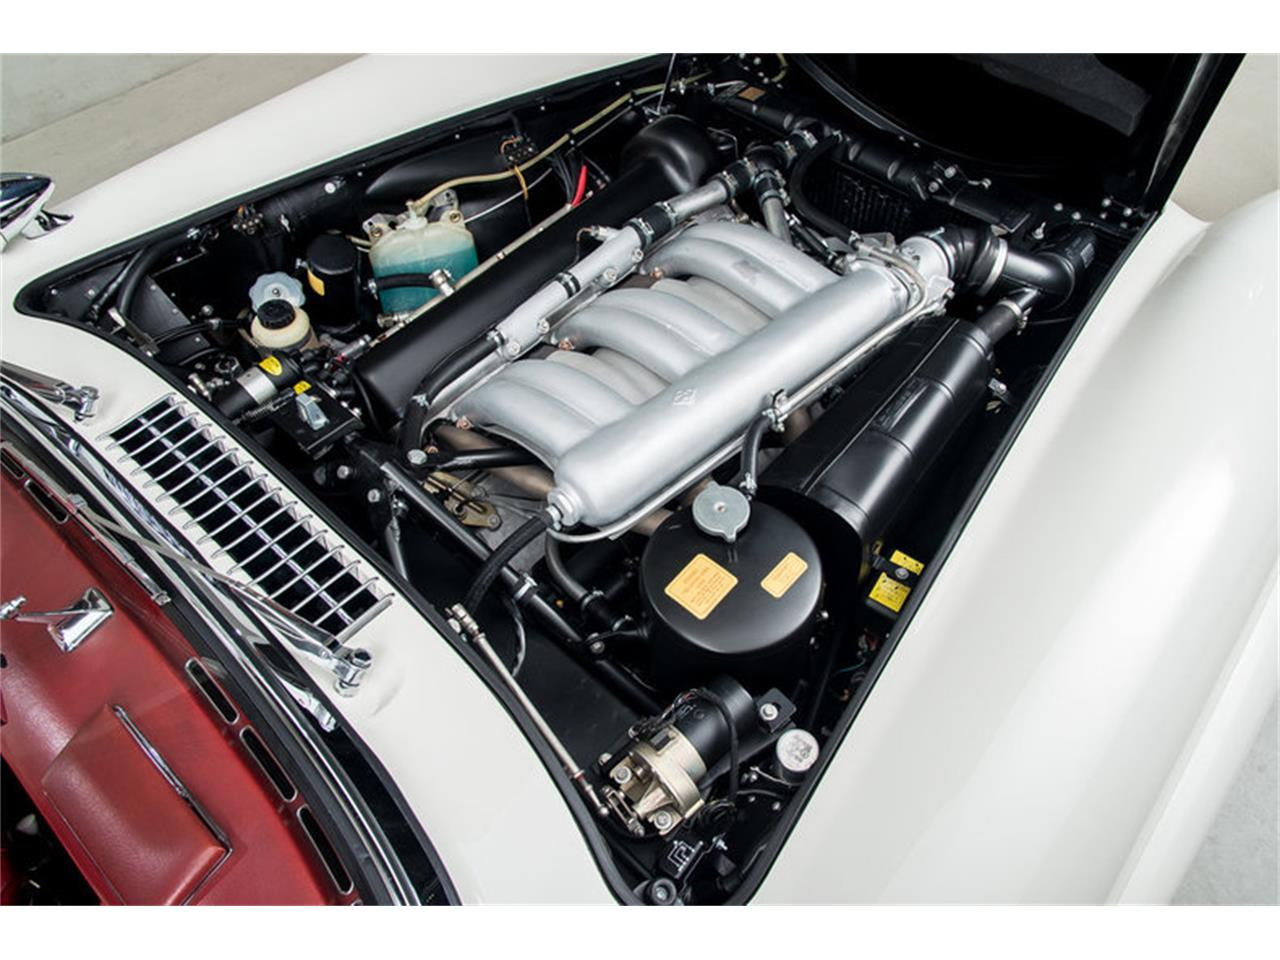 Large Picture of Classic '63 Mercedes-Benz 300SL Roadster located in California Auction Vehicle Offered by Canepa - EFPZ